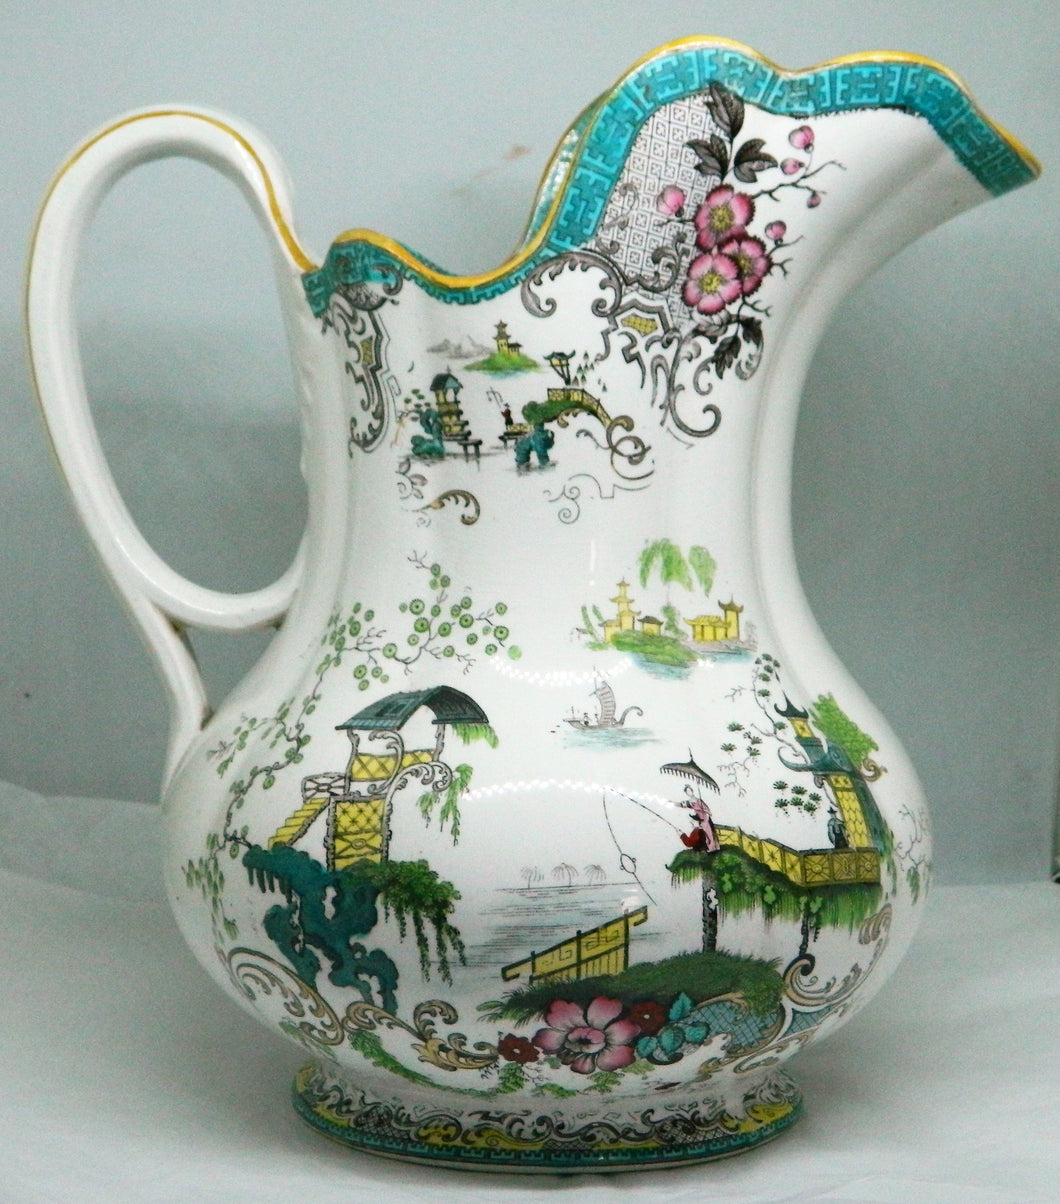 Copeland Spode Ewer and Chamber pot - Japanese scene - 1880